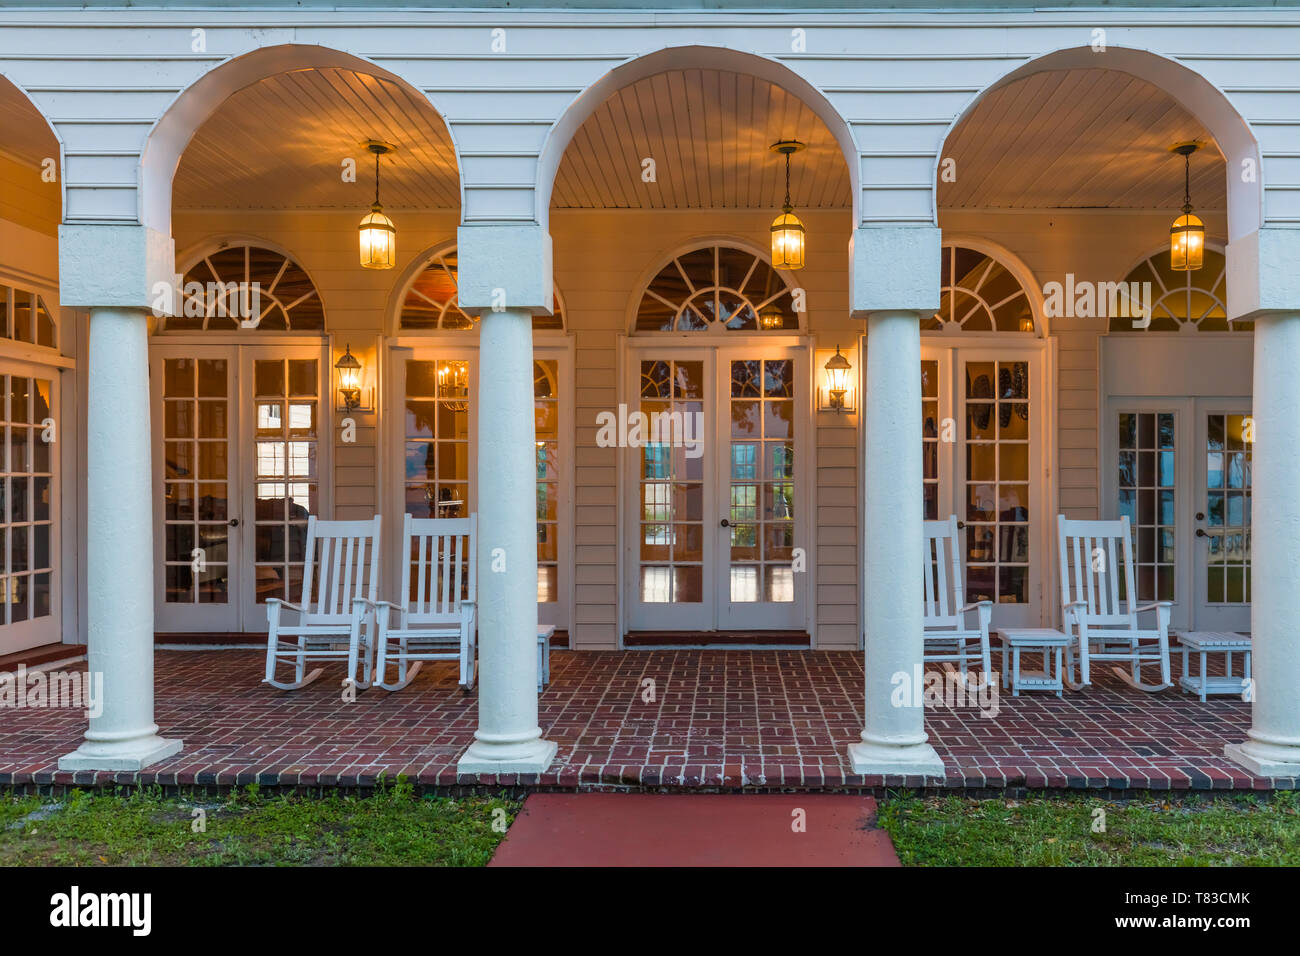 Porch at Capernaum Lakeside Lodge also Capernaum Inn Retreat Center built in 1925 in Lake Wales Polk County Floridda in the United States Stock Photo